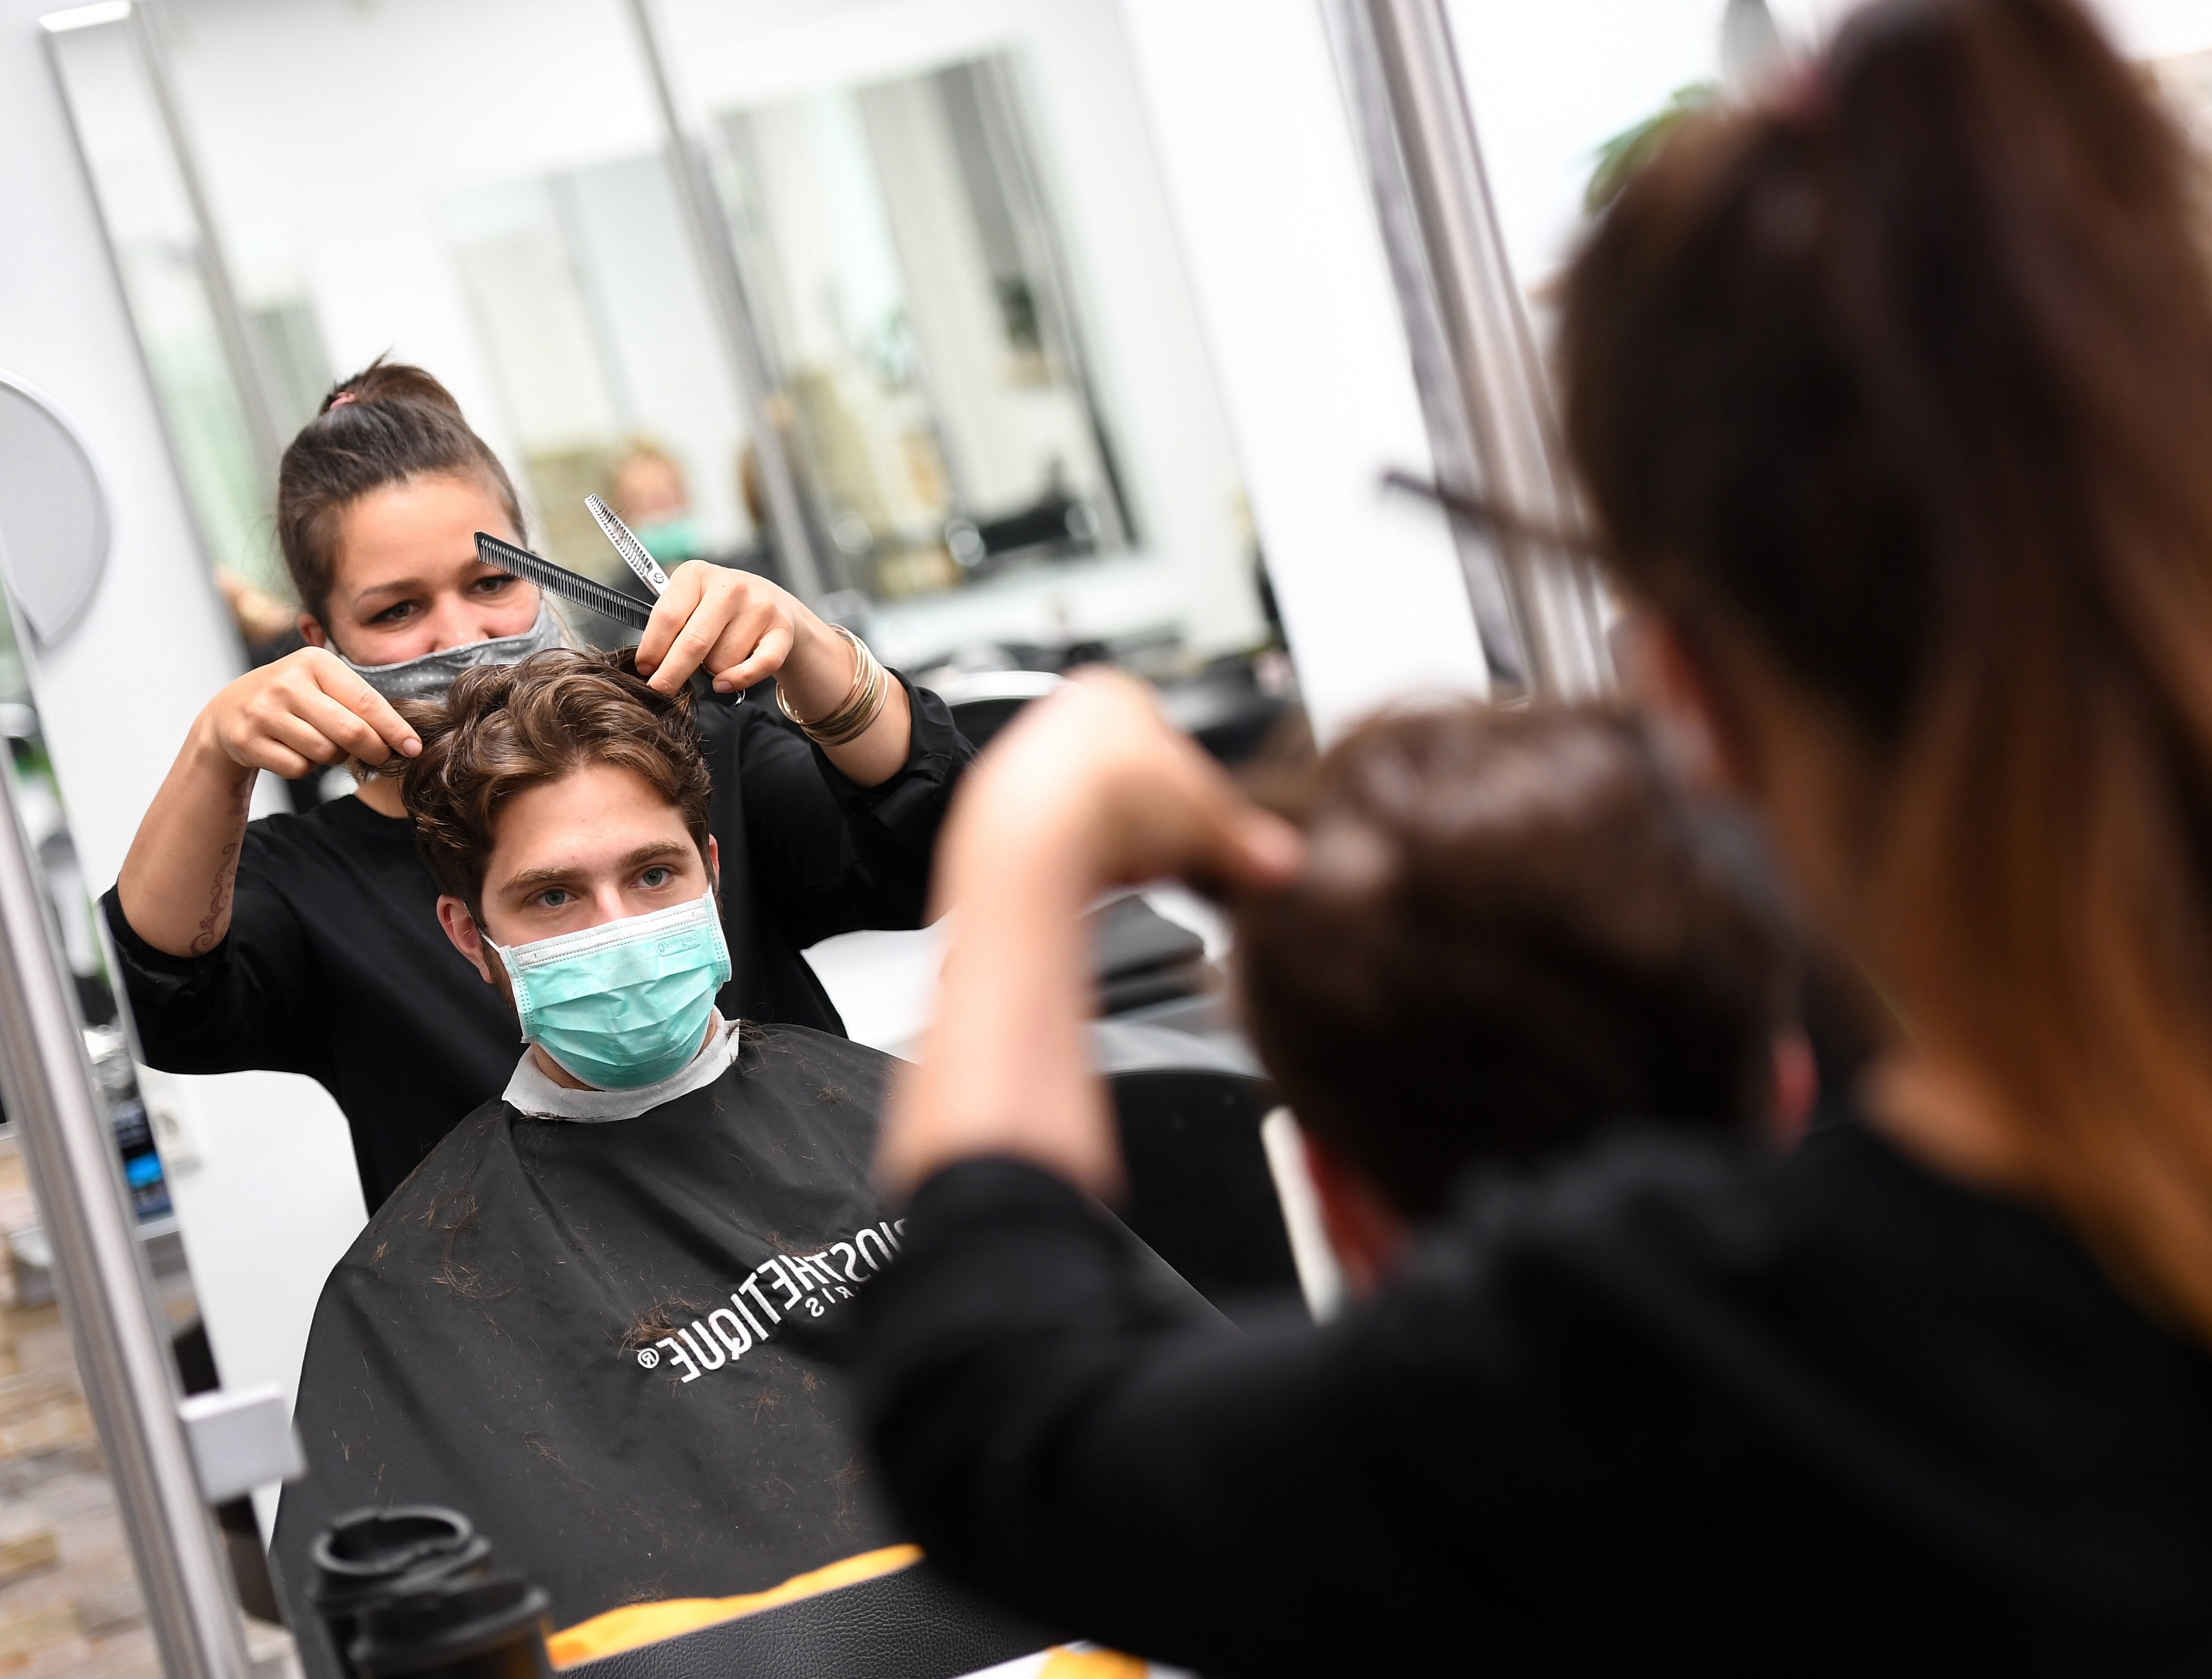 Hairdressers and barbers have been closed due to the coronavirus lockdown